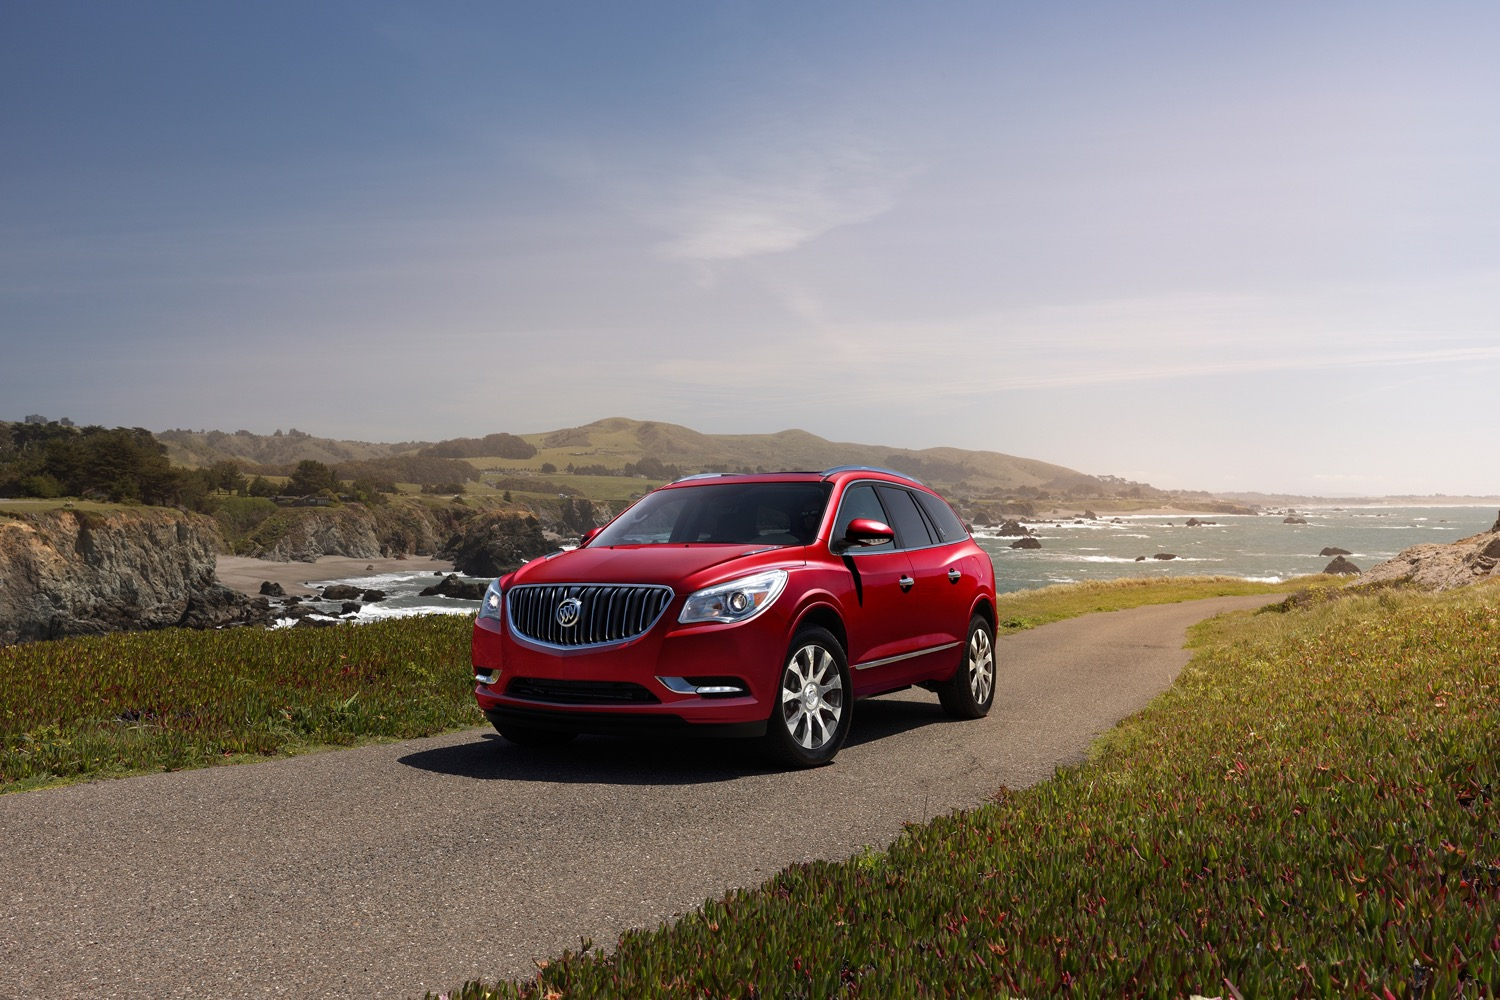 2017 Buick Enclave gets Sport Touring Edition trim